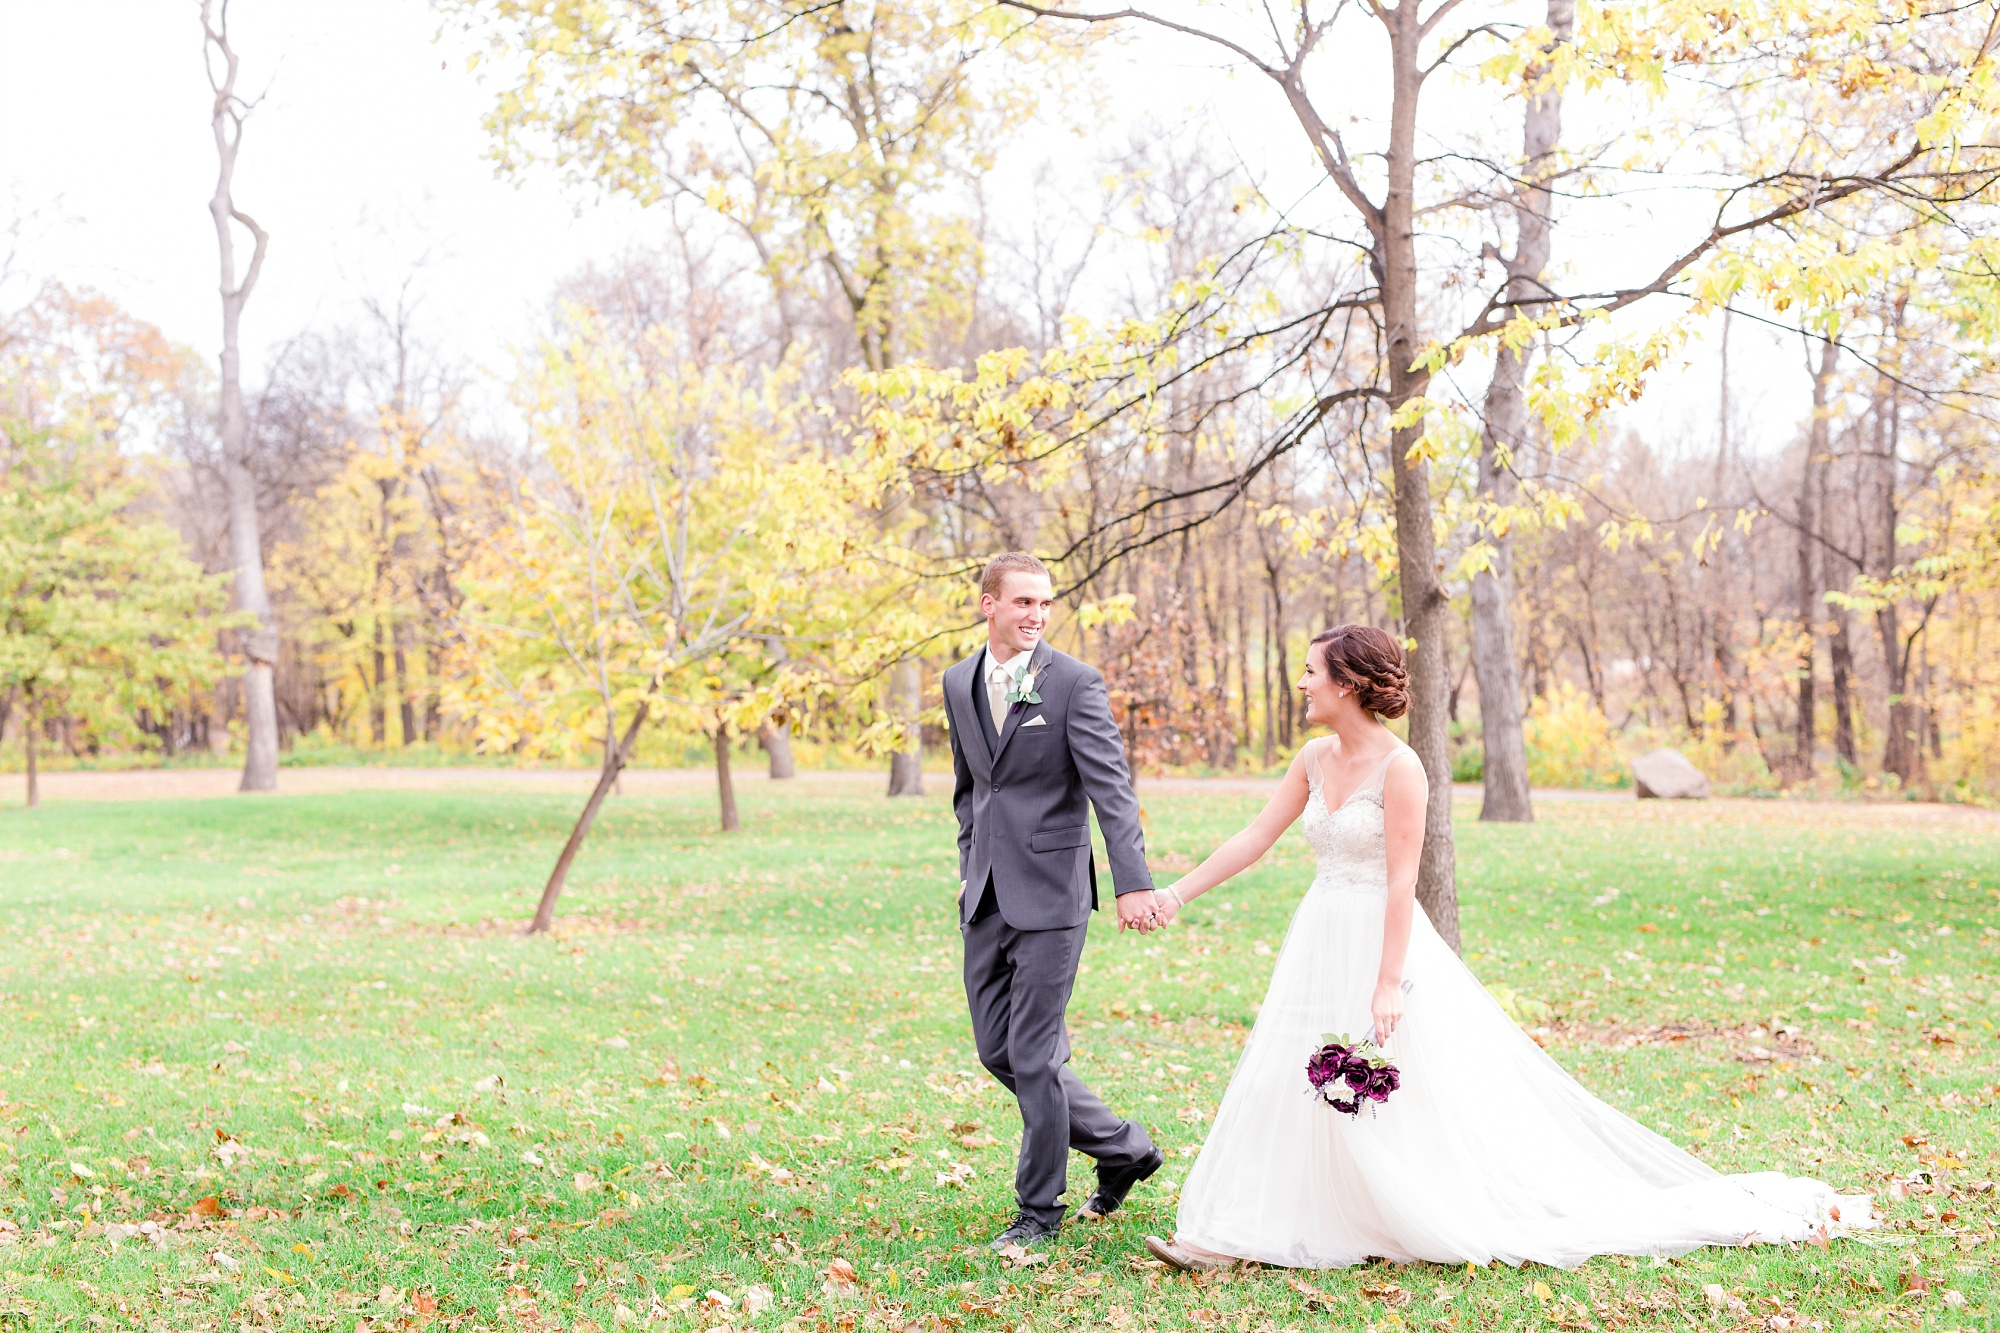 Classy, Rustic Styled Fall Wedding at the First Congregational Church of Christ and the Cambria Hotel & Suites in Fargo, ND | Portraits at Lindenwood Park | Dani & Alex | Photography by Amber Langerud Photography